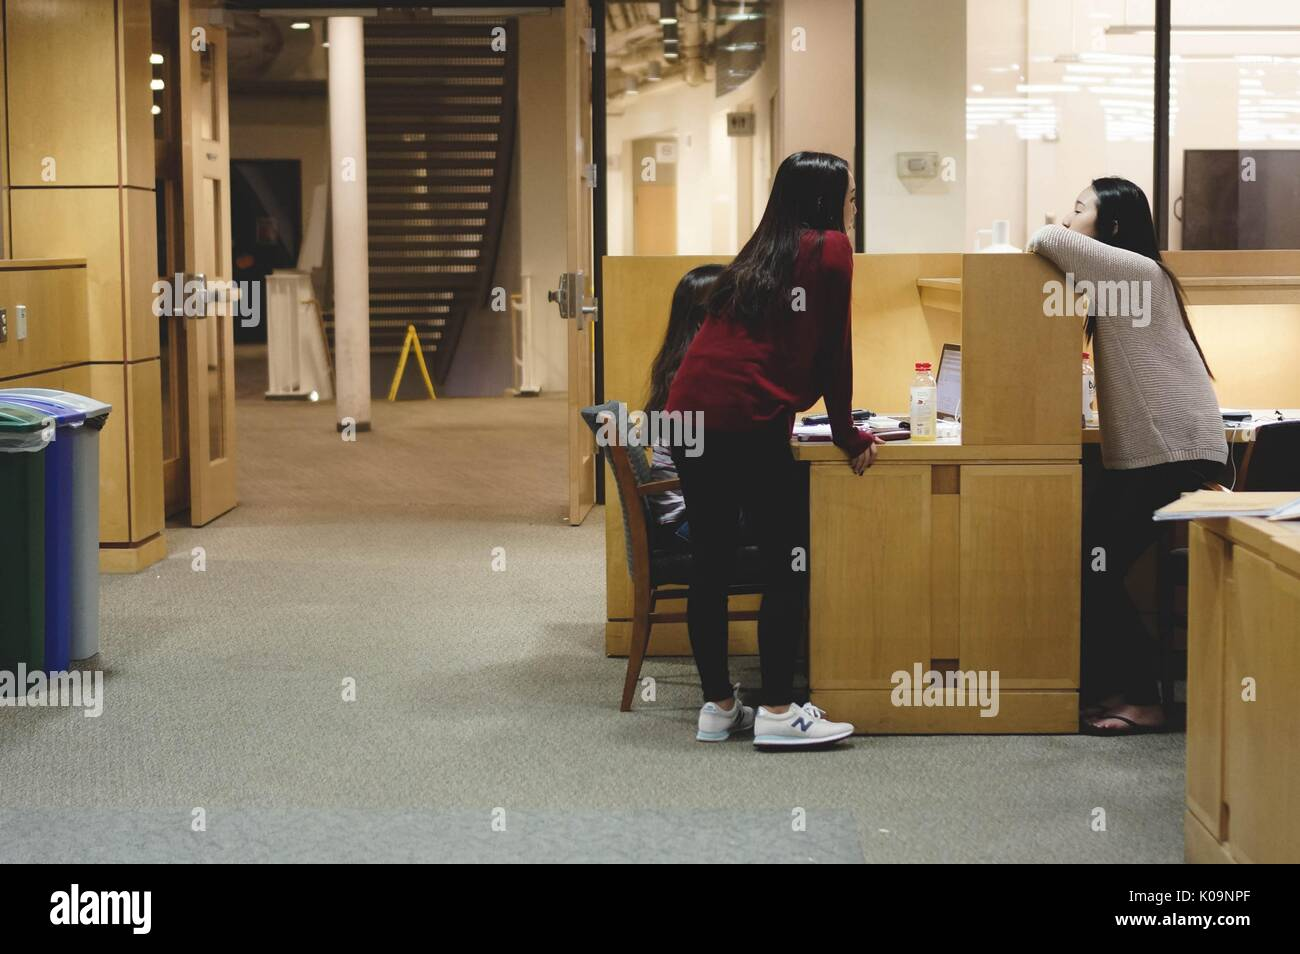 Students lean over a cubicle and chat to take a break from their studies in the Milton S. Eisenhower Library on the Homewood campus of the Johns Hopkins University in Baltimore, Maryland, 2015. Courtesy Eric Chen. - Stock Image